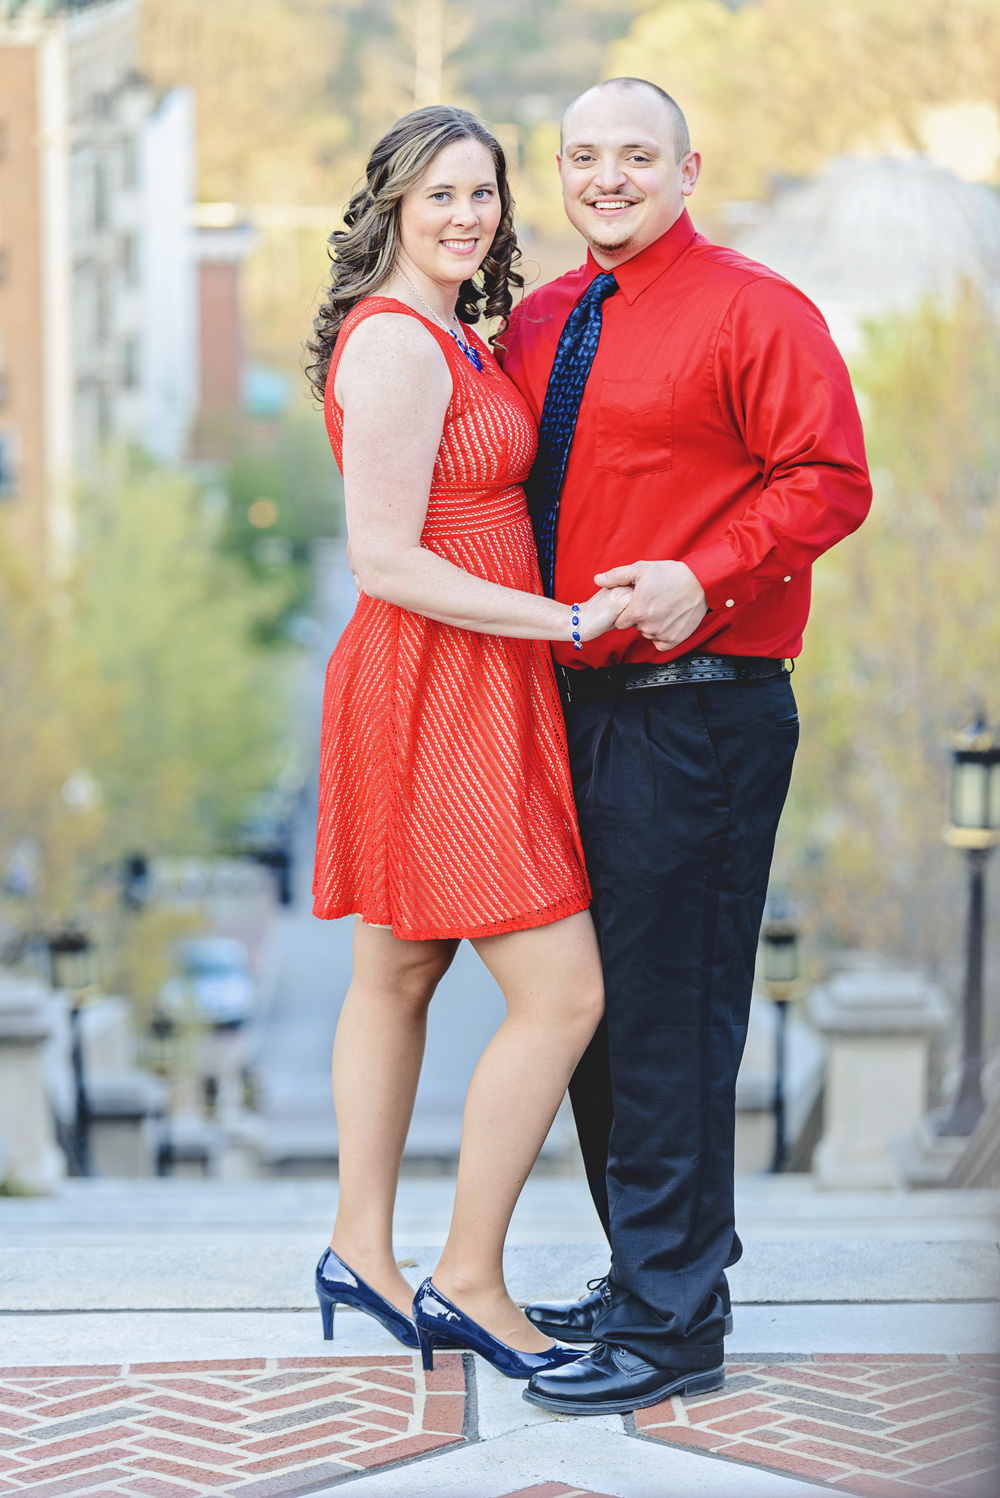 softball_fishing_downtown_engagement_session_lynchburg_va020.jpg